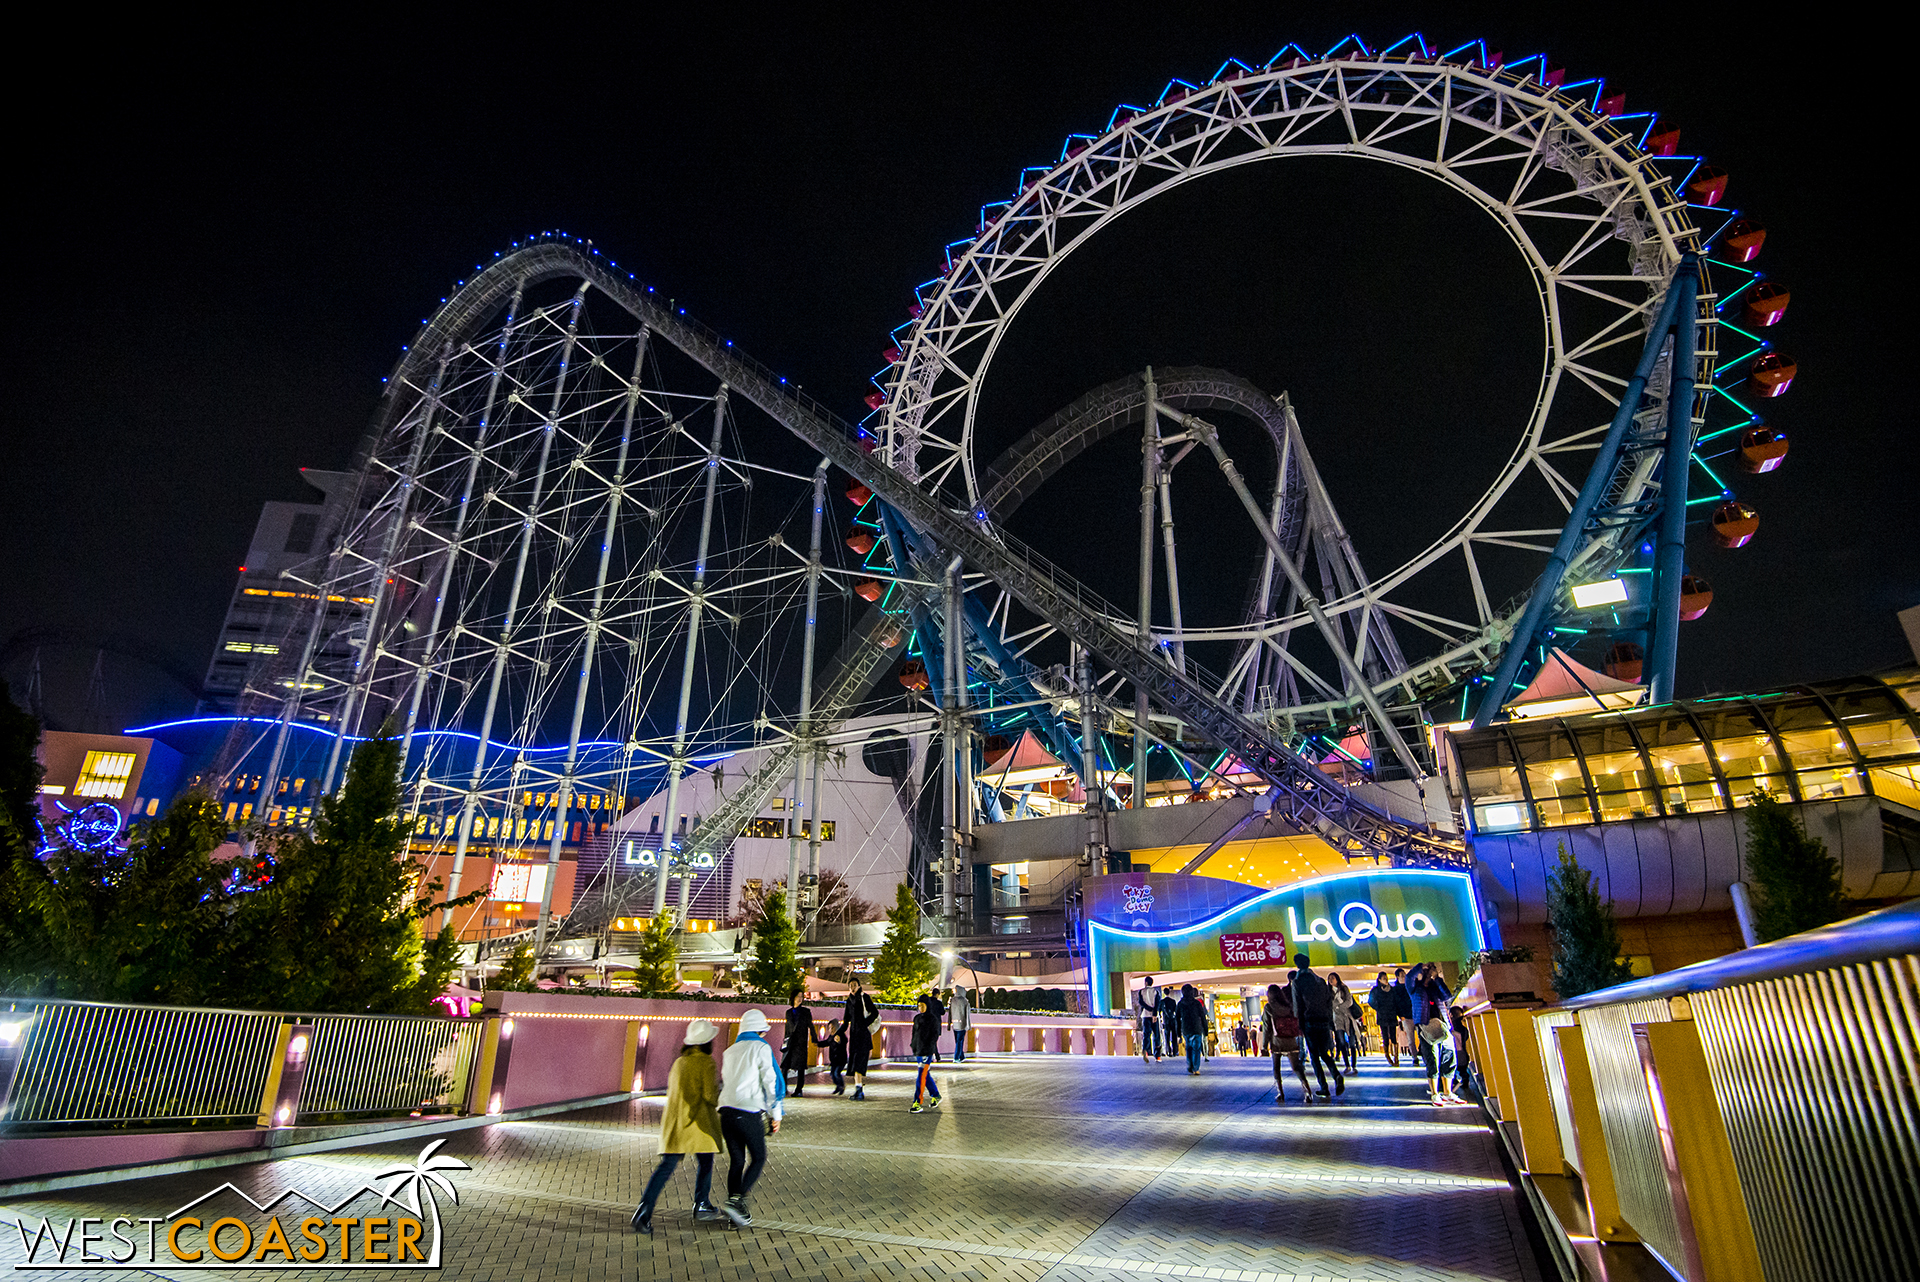 La Qua, located right in the Tokyo Dome City complex, features the best named roller coaster ever: the Intamin megacoaster, Thunder Dolphin.